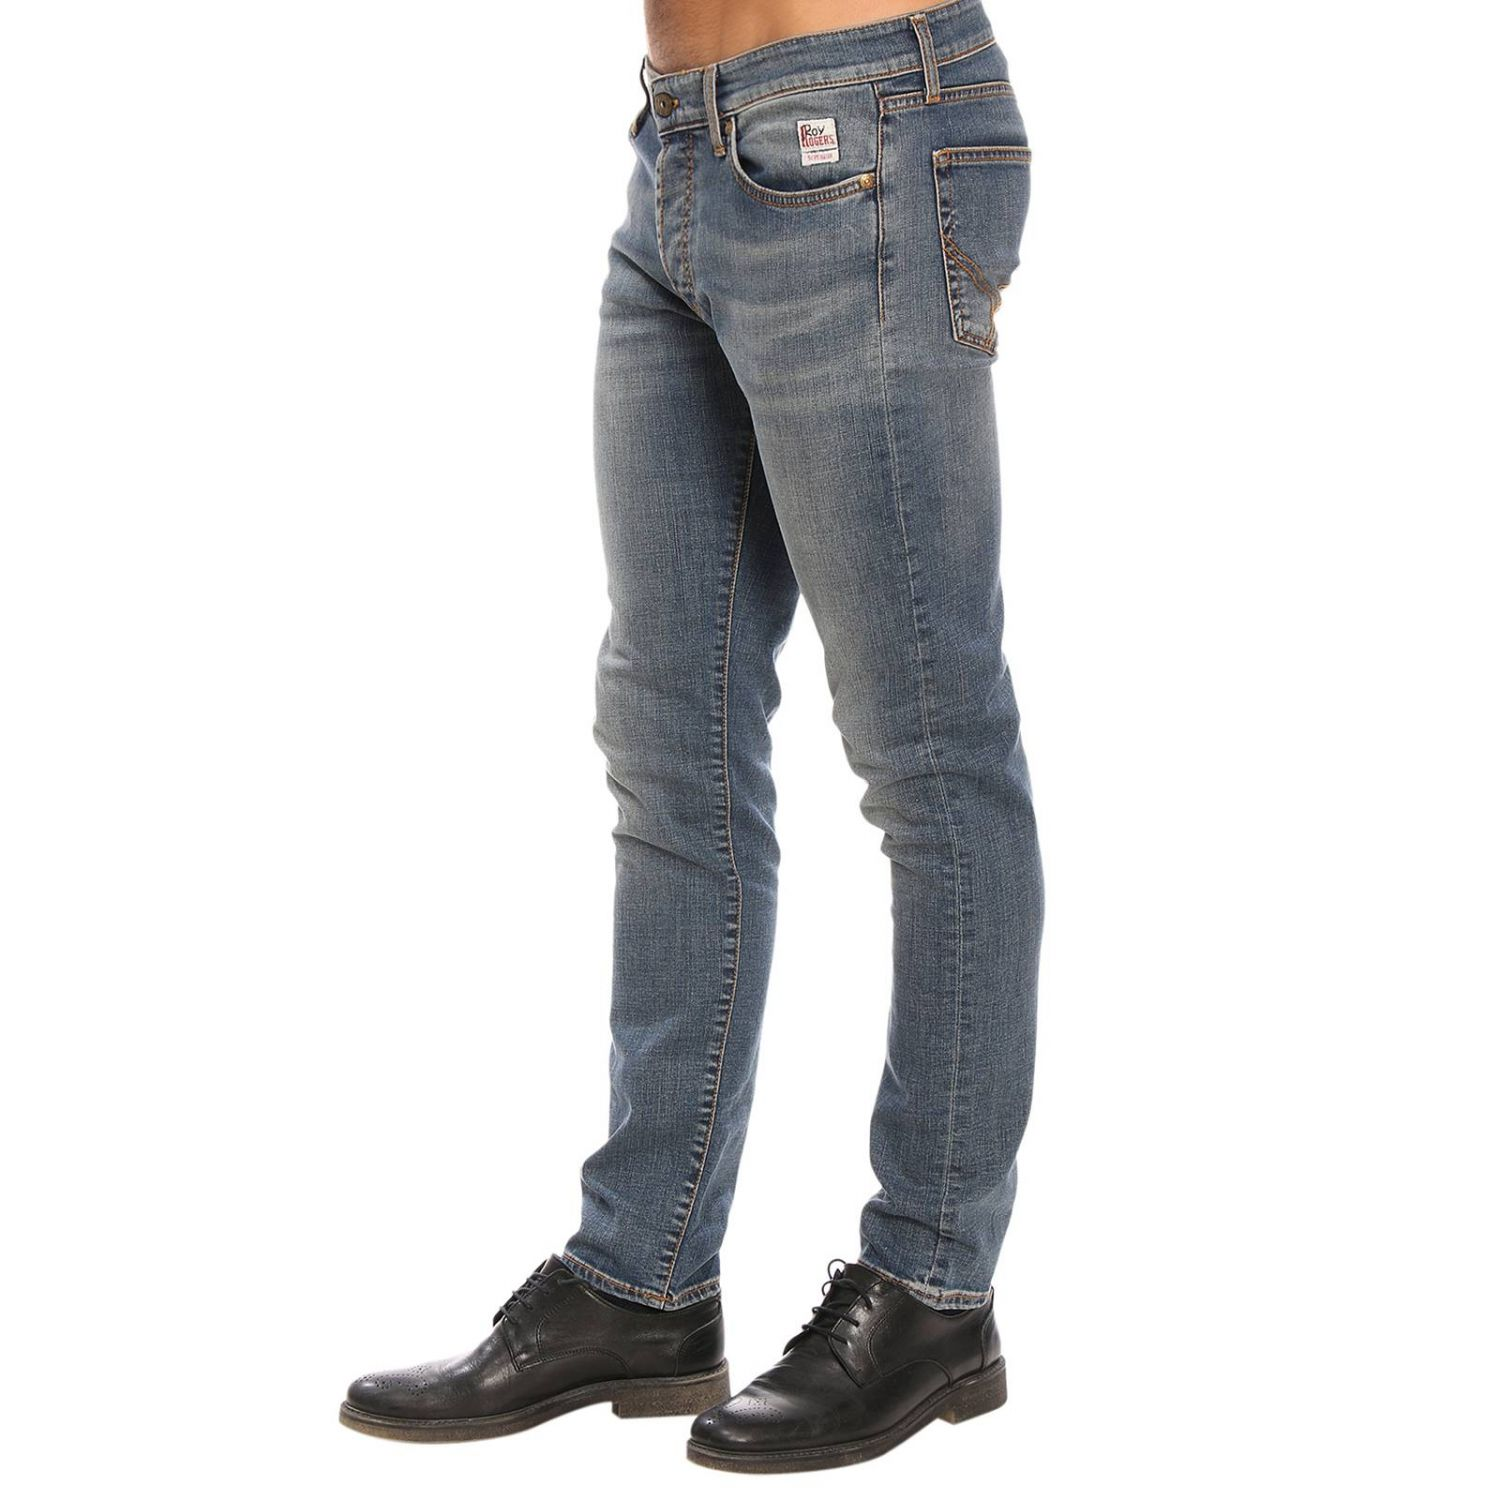 Jeans hombre Roy Rogers azul oscuro 2